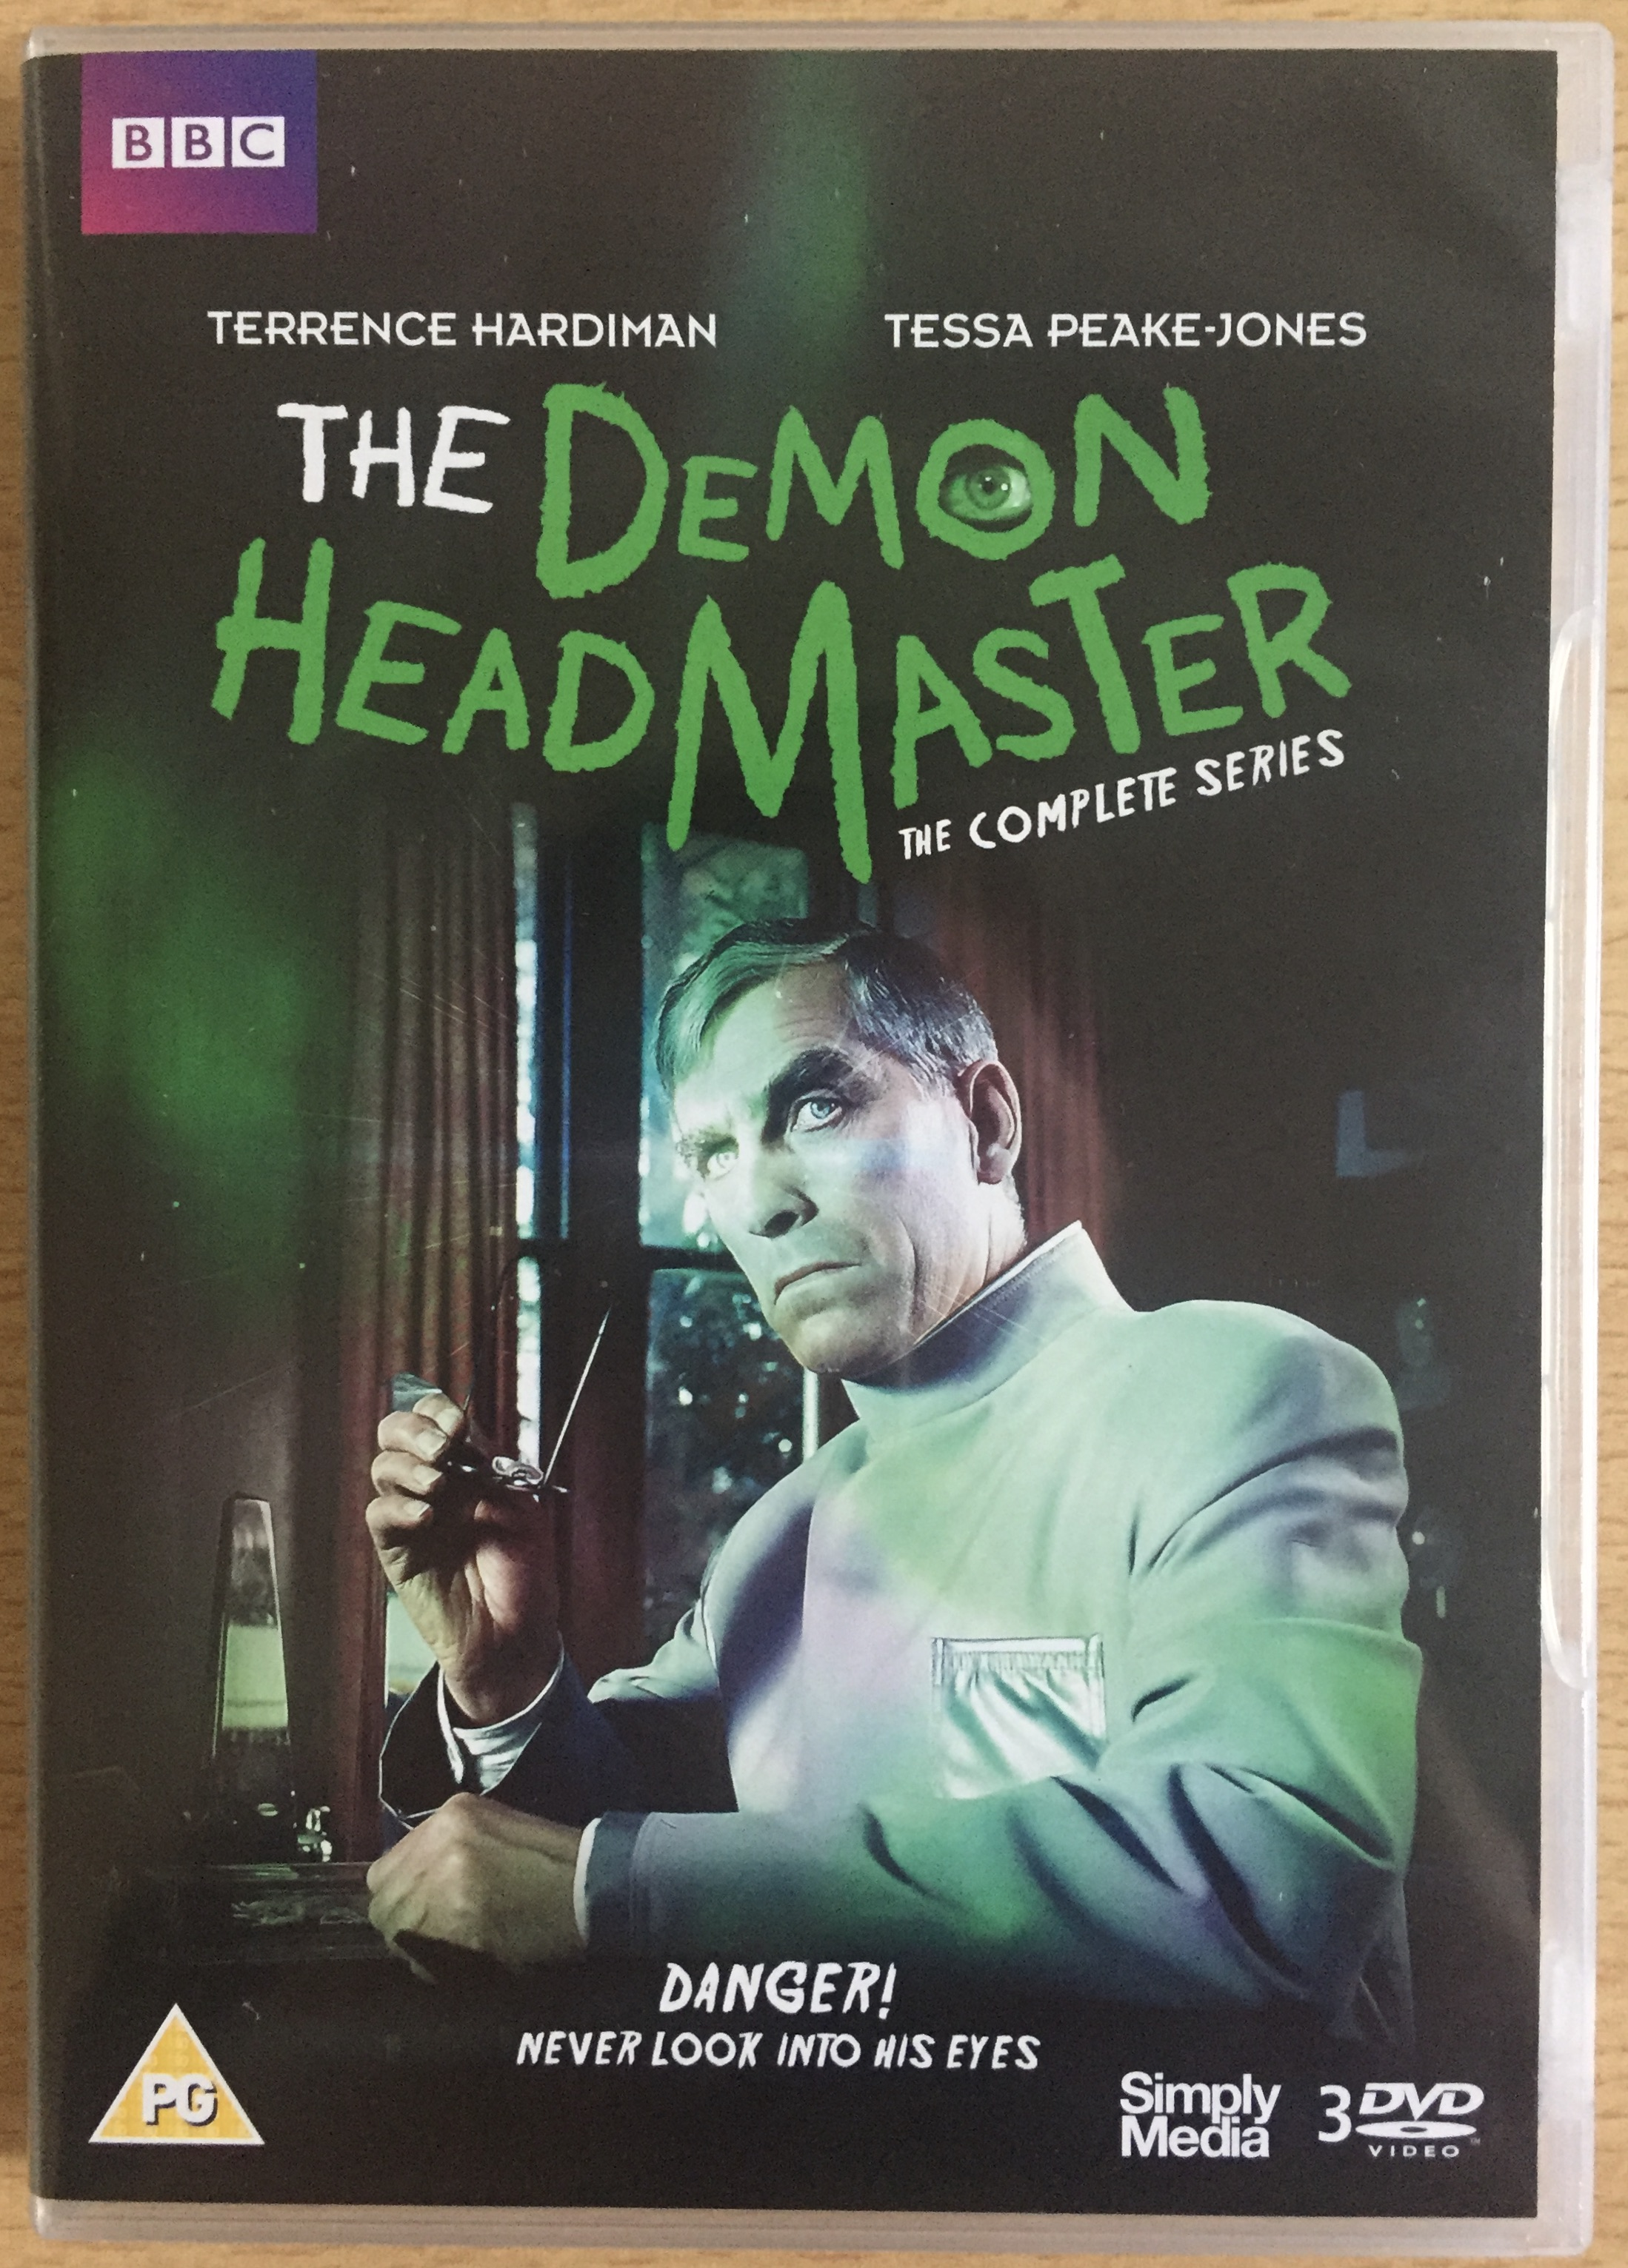 Front cover of the DVD for The Demon Headmaster, showing the title character with his glasses in his hand as he looks over to the side, seemingly at us.